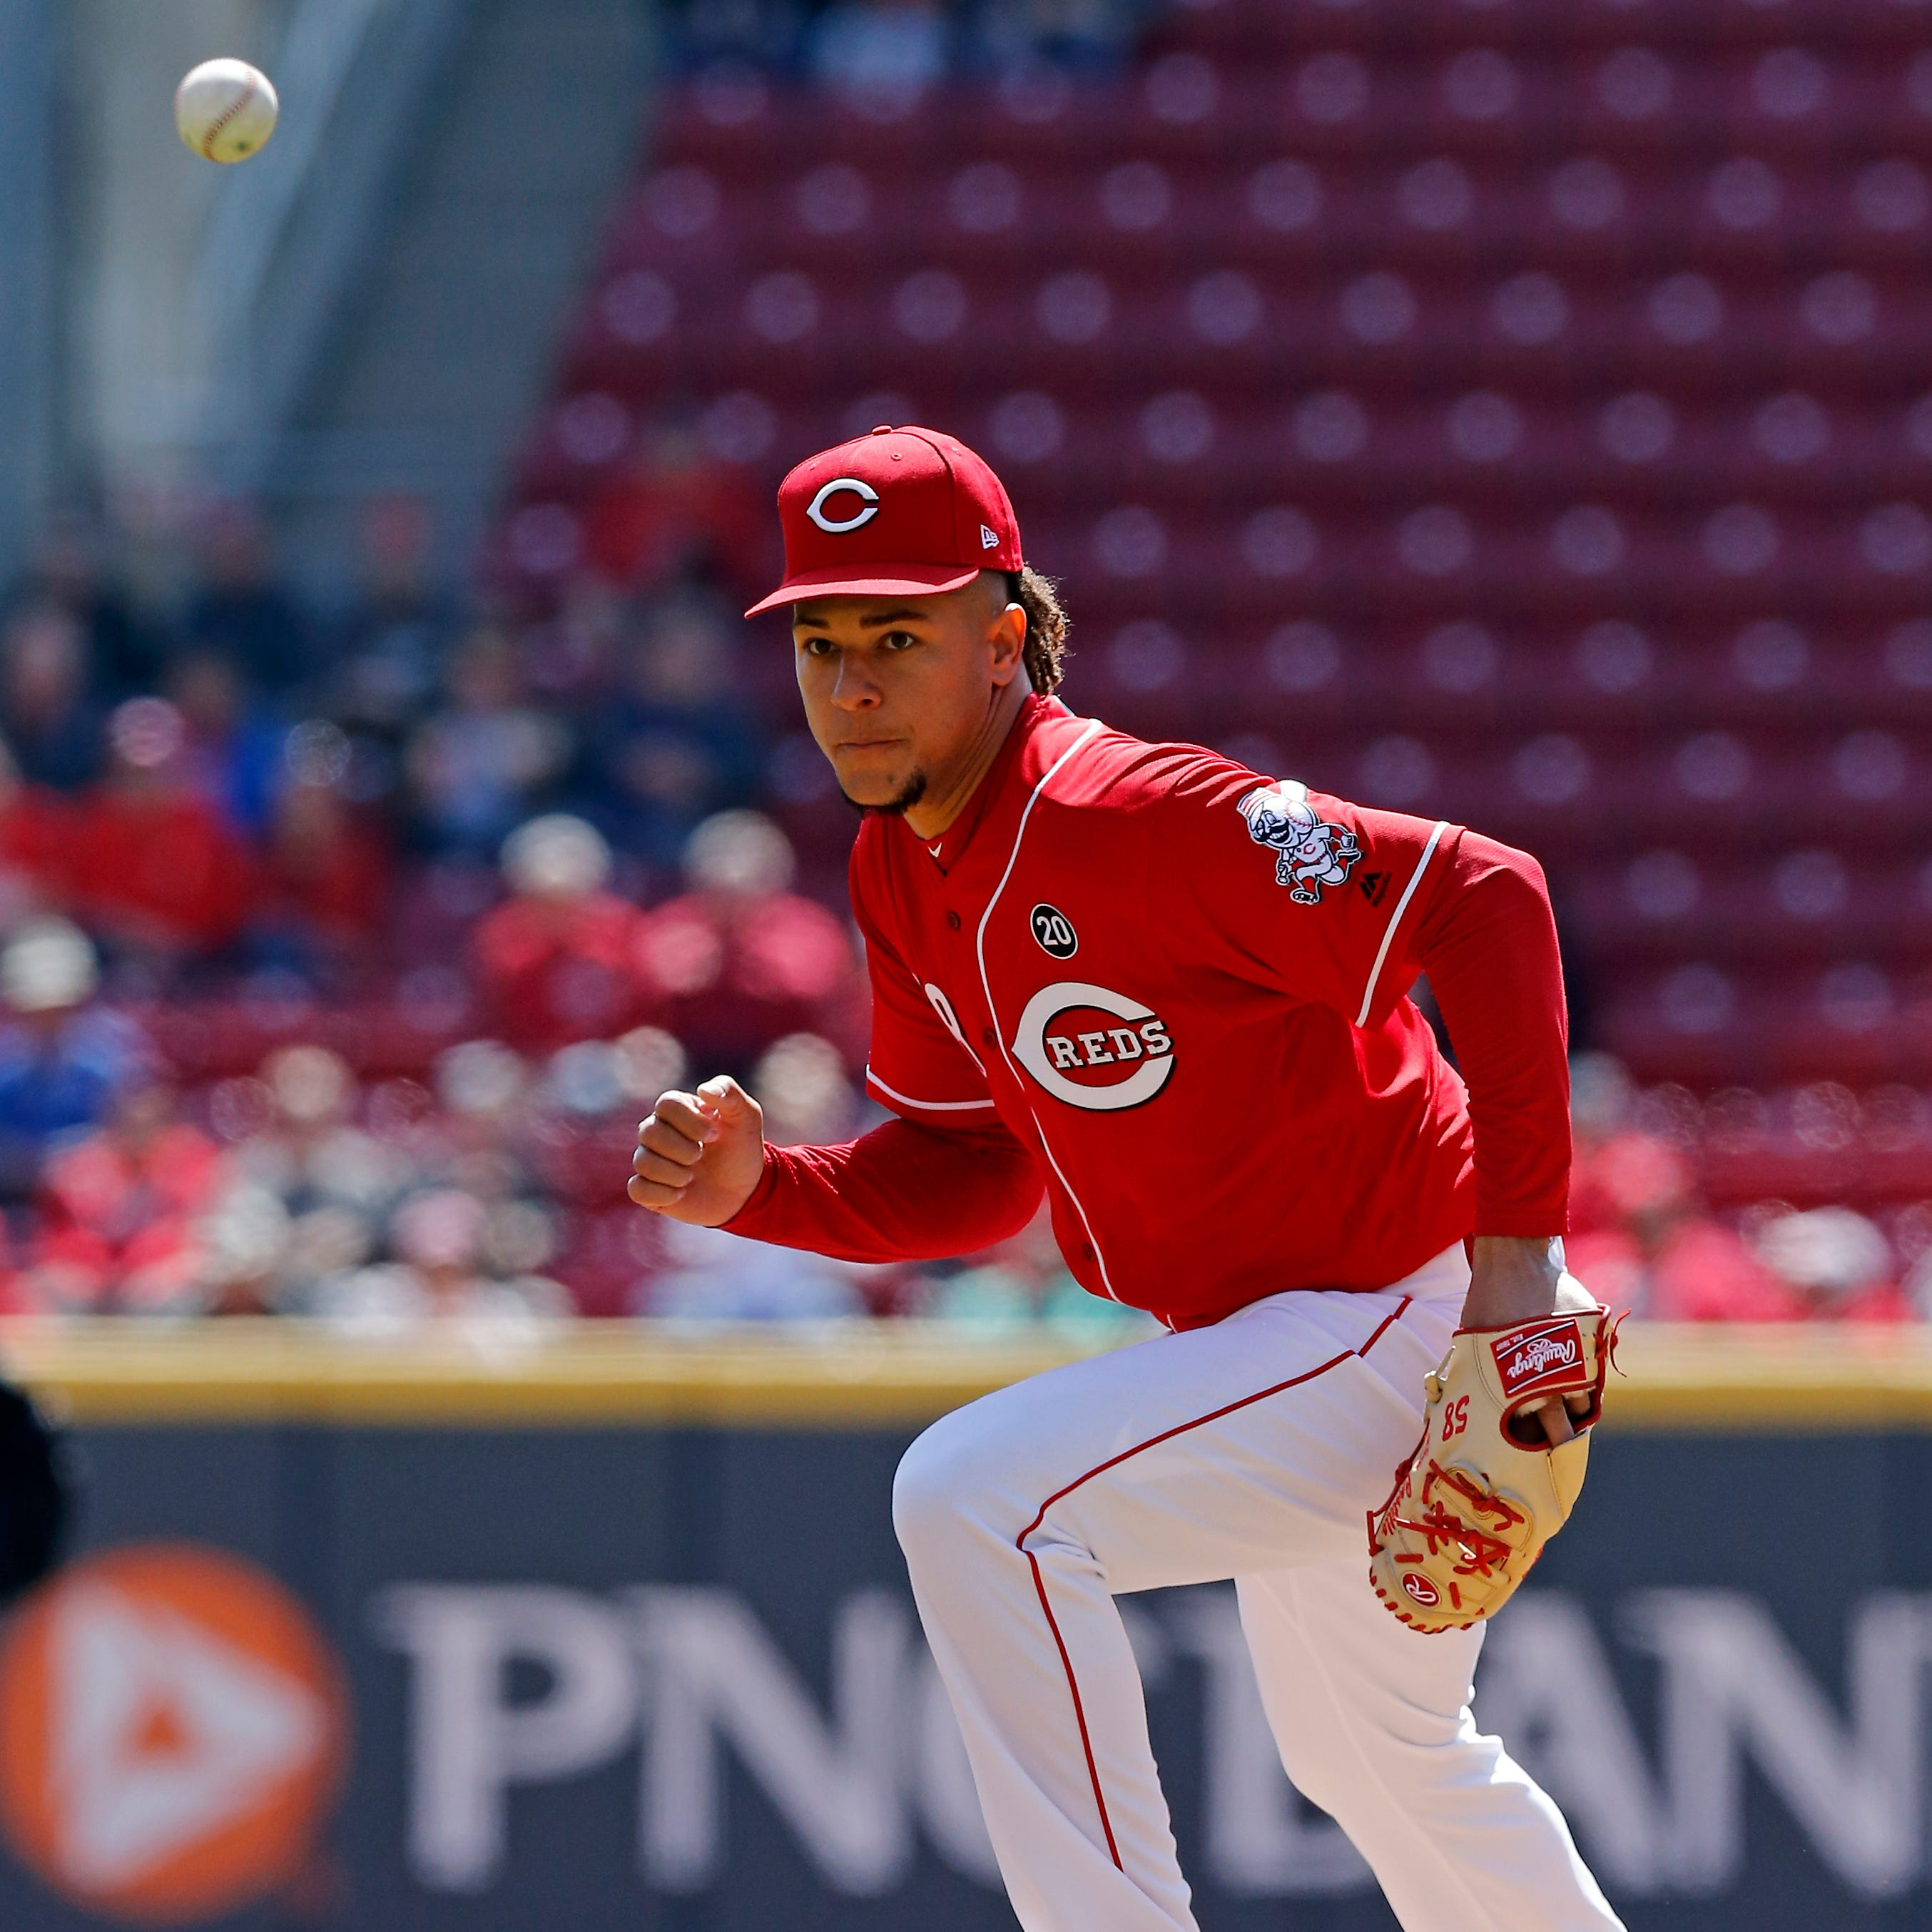 A balk comes back to bite Luis Castillo in dominant start; Cincinnati Reds swept by Brewers